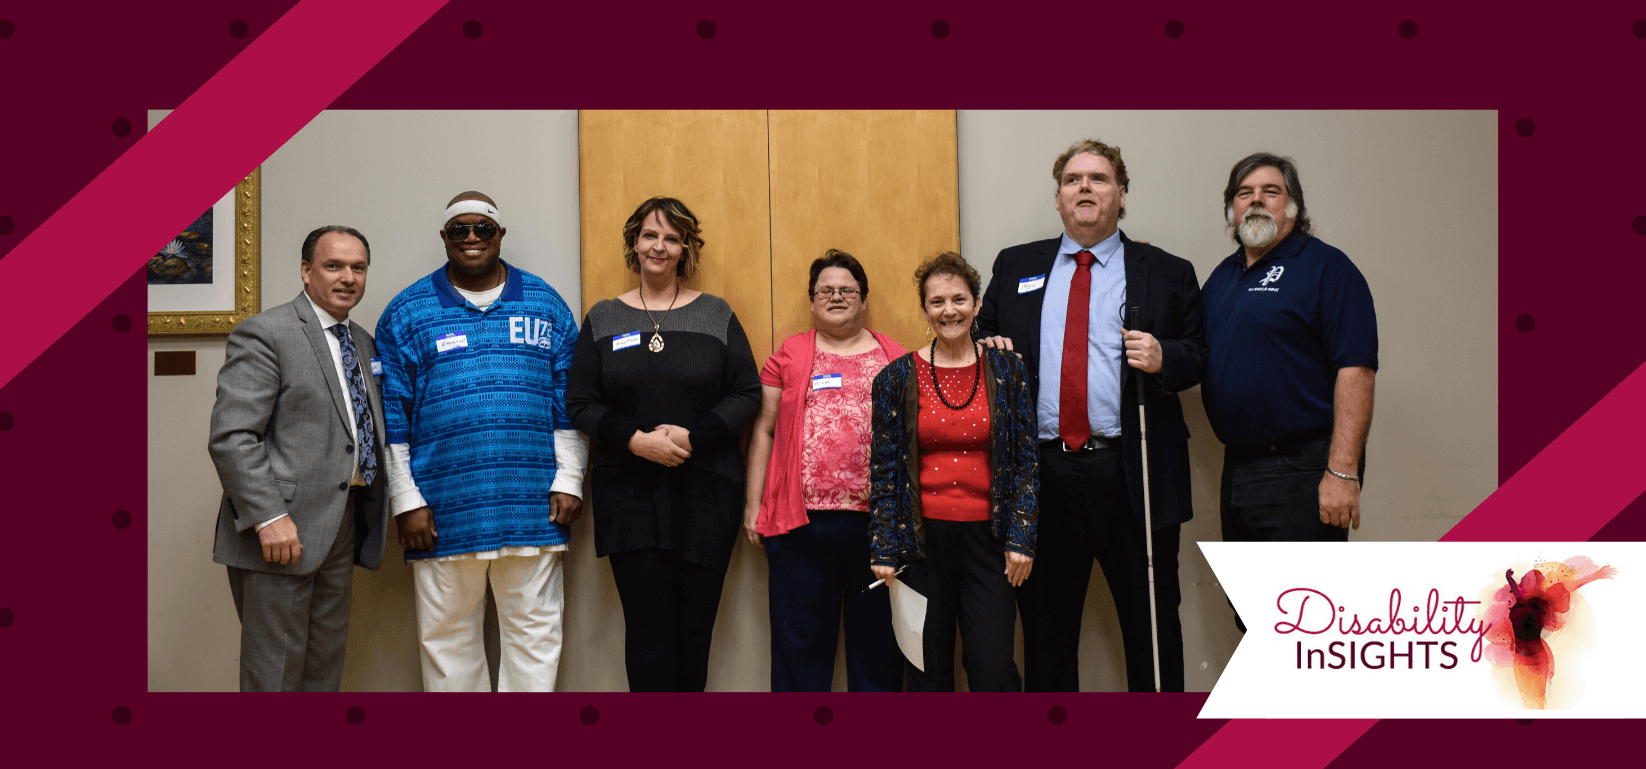 Disabiliy InSIGHTS Group Photo - Featured Image